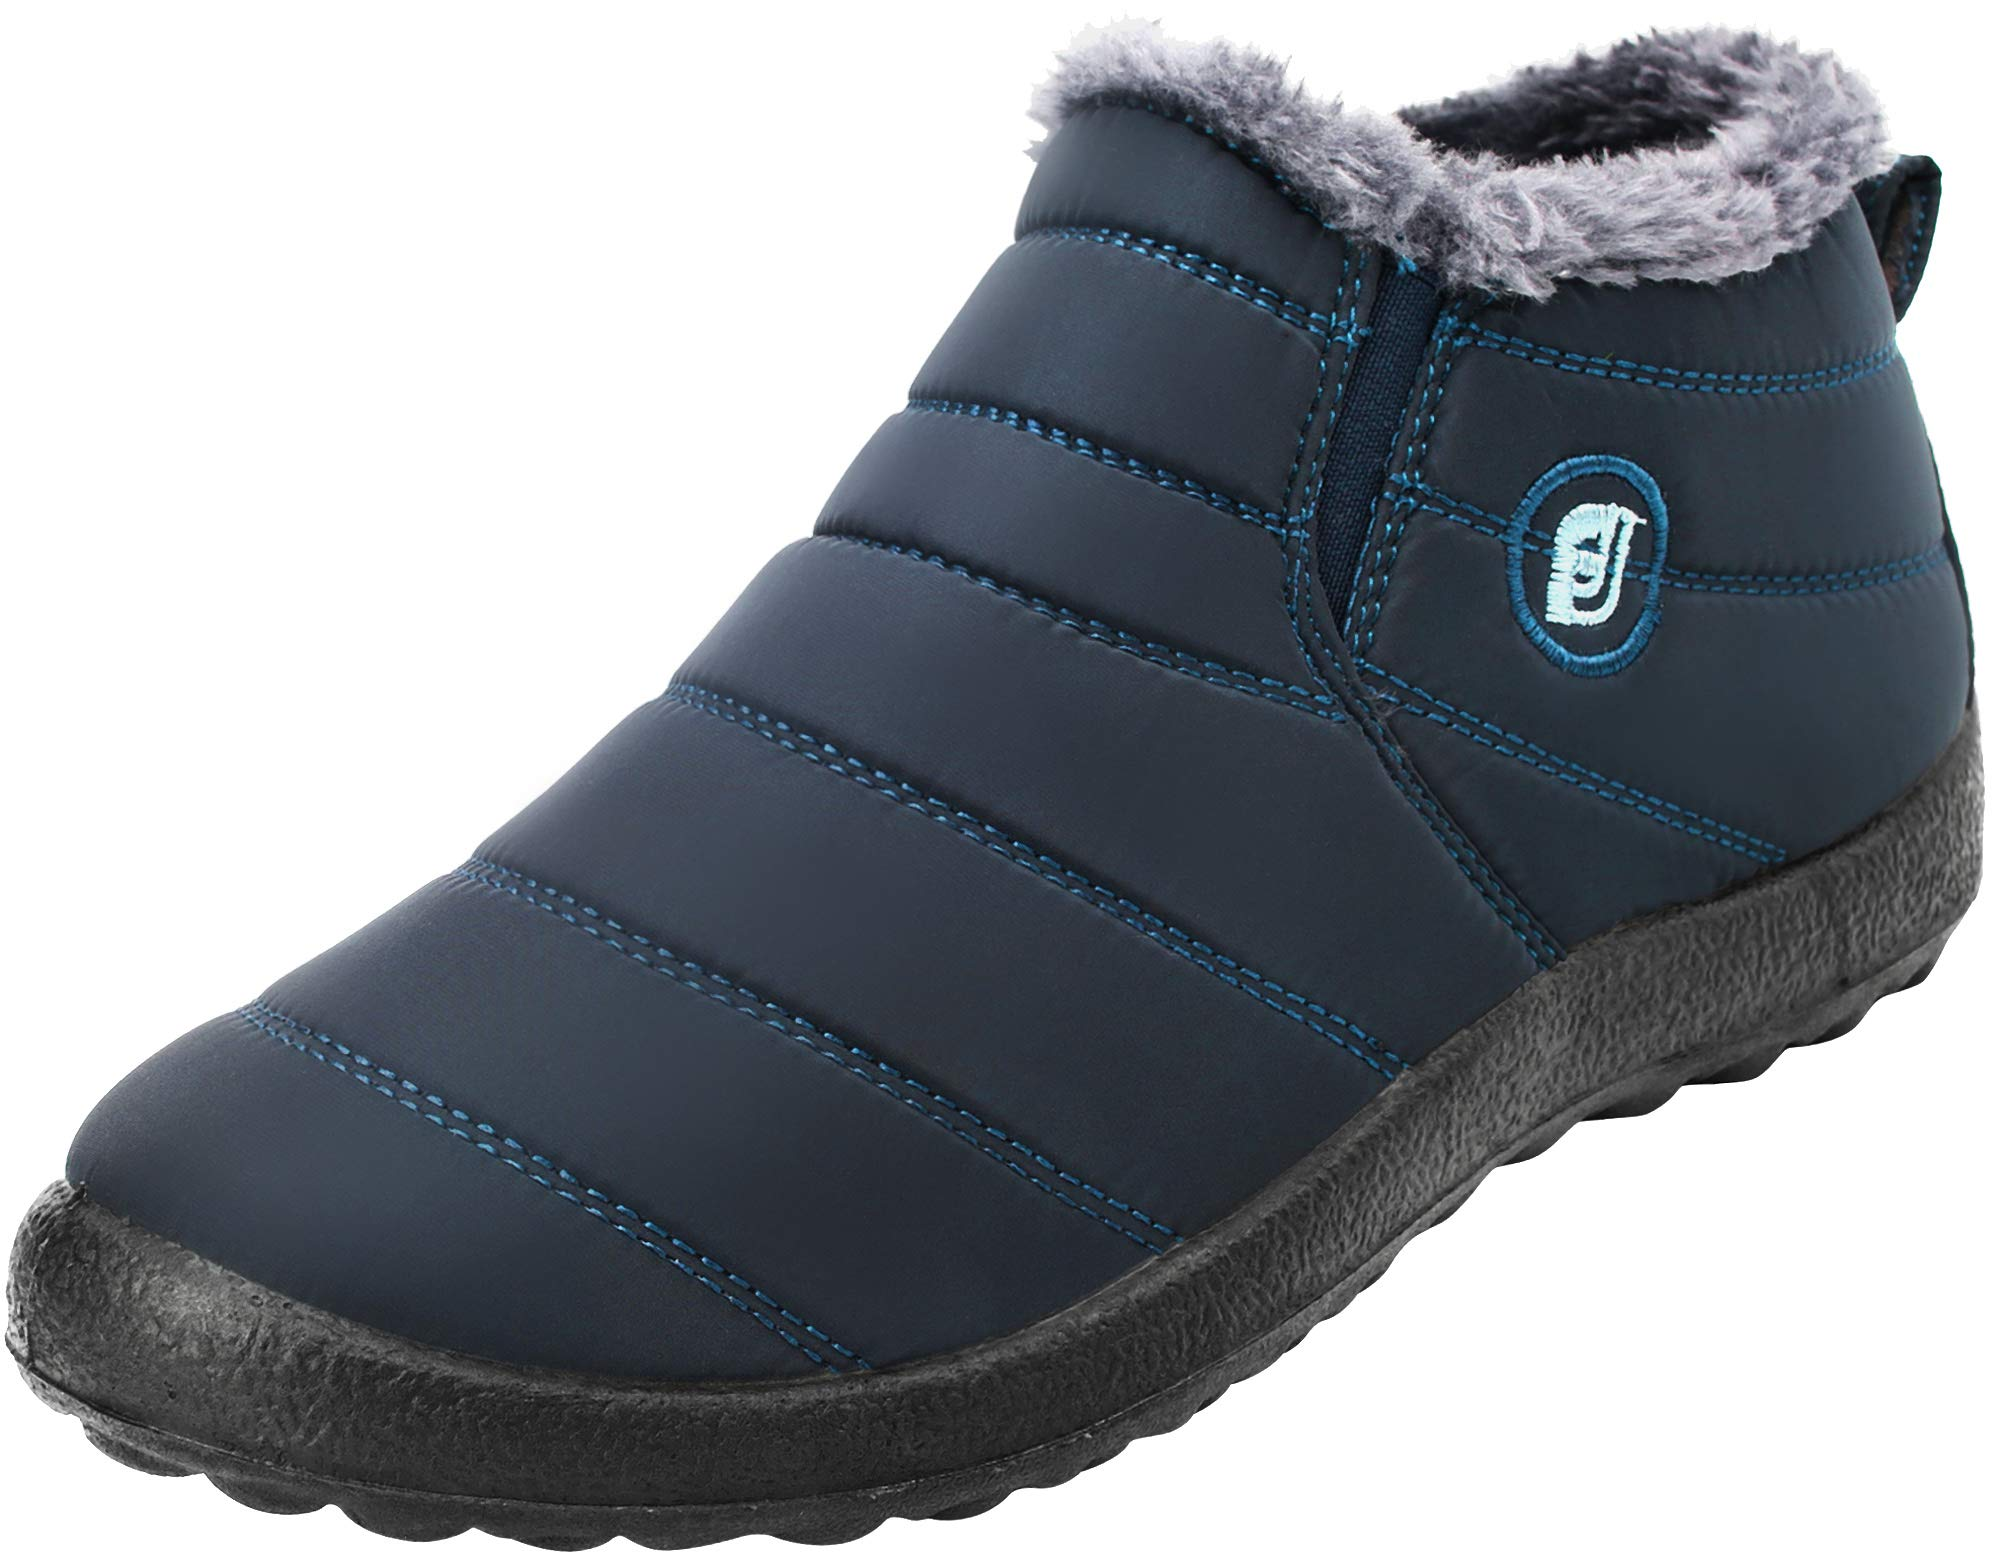 FEETCITY Women's Fur Lined Winter Snow Boots Warm Sneakers Navy Women 8.5 B(M) US by FEETCITY